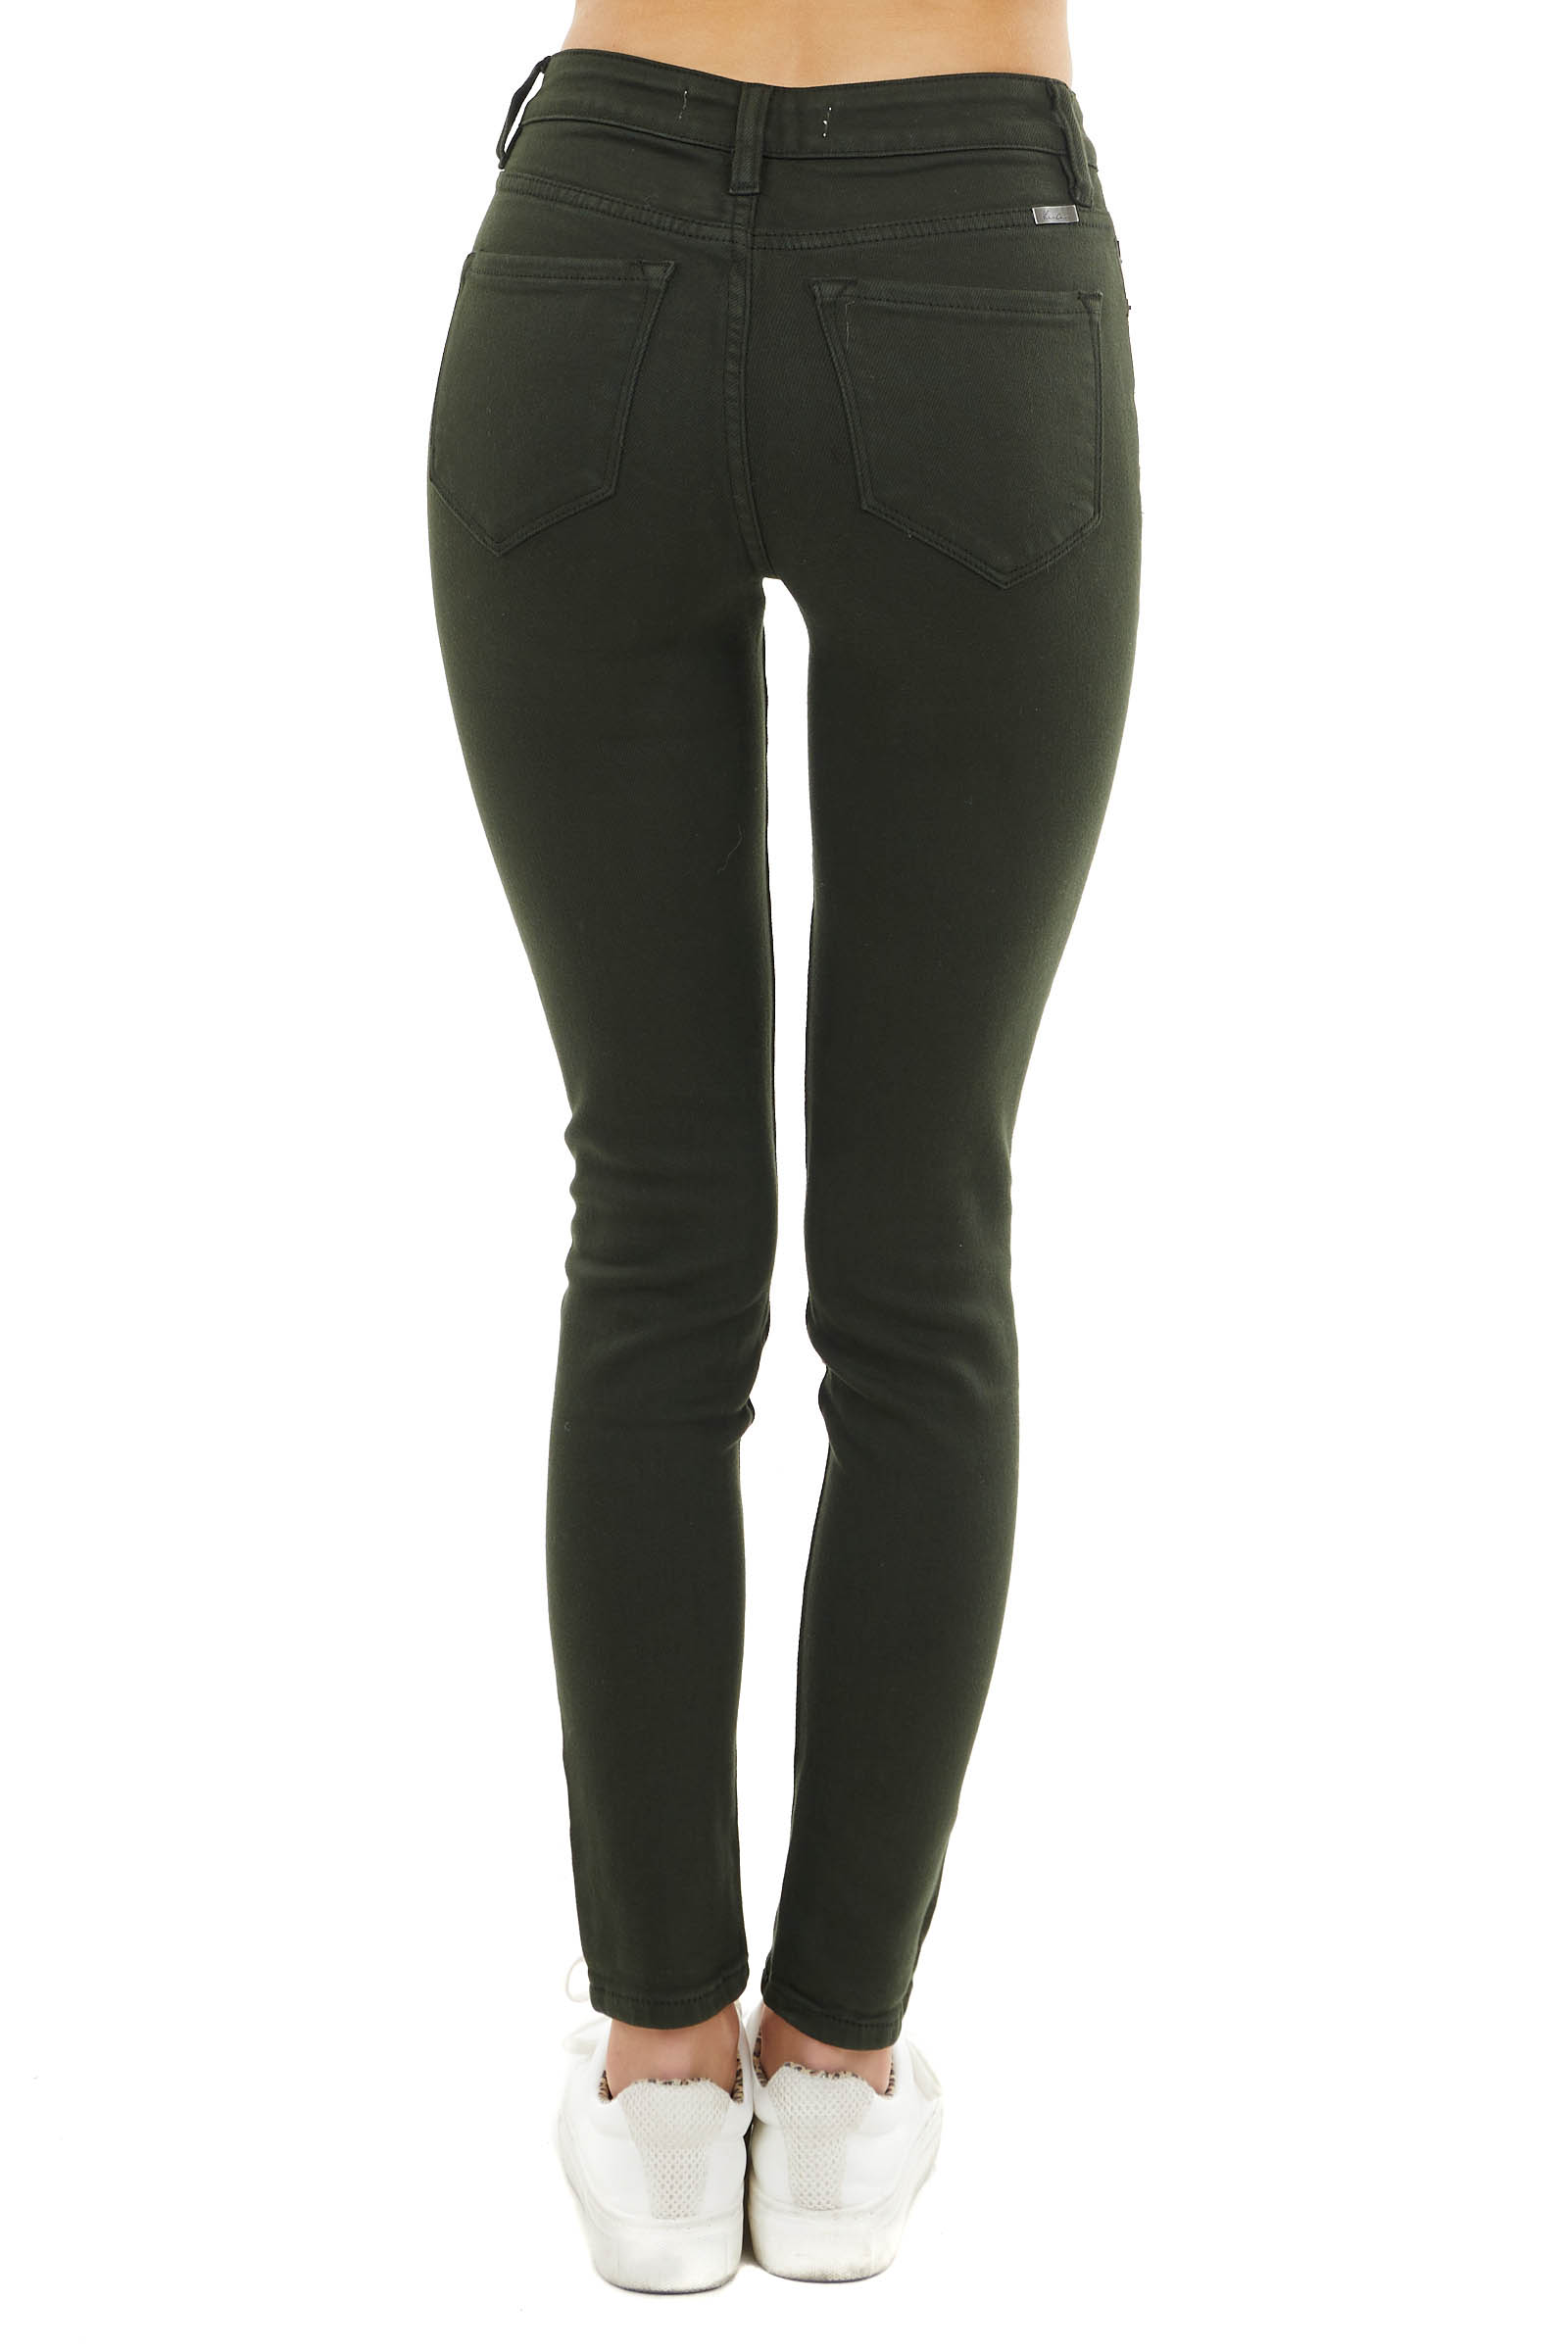 Dark Olive High Rise Super Skinny Jeans with Pockets